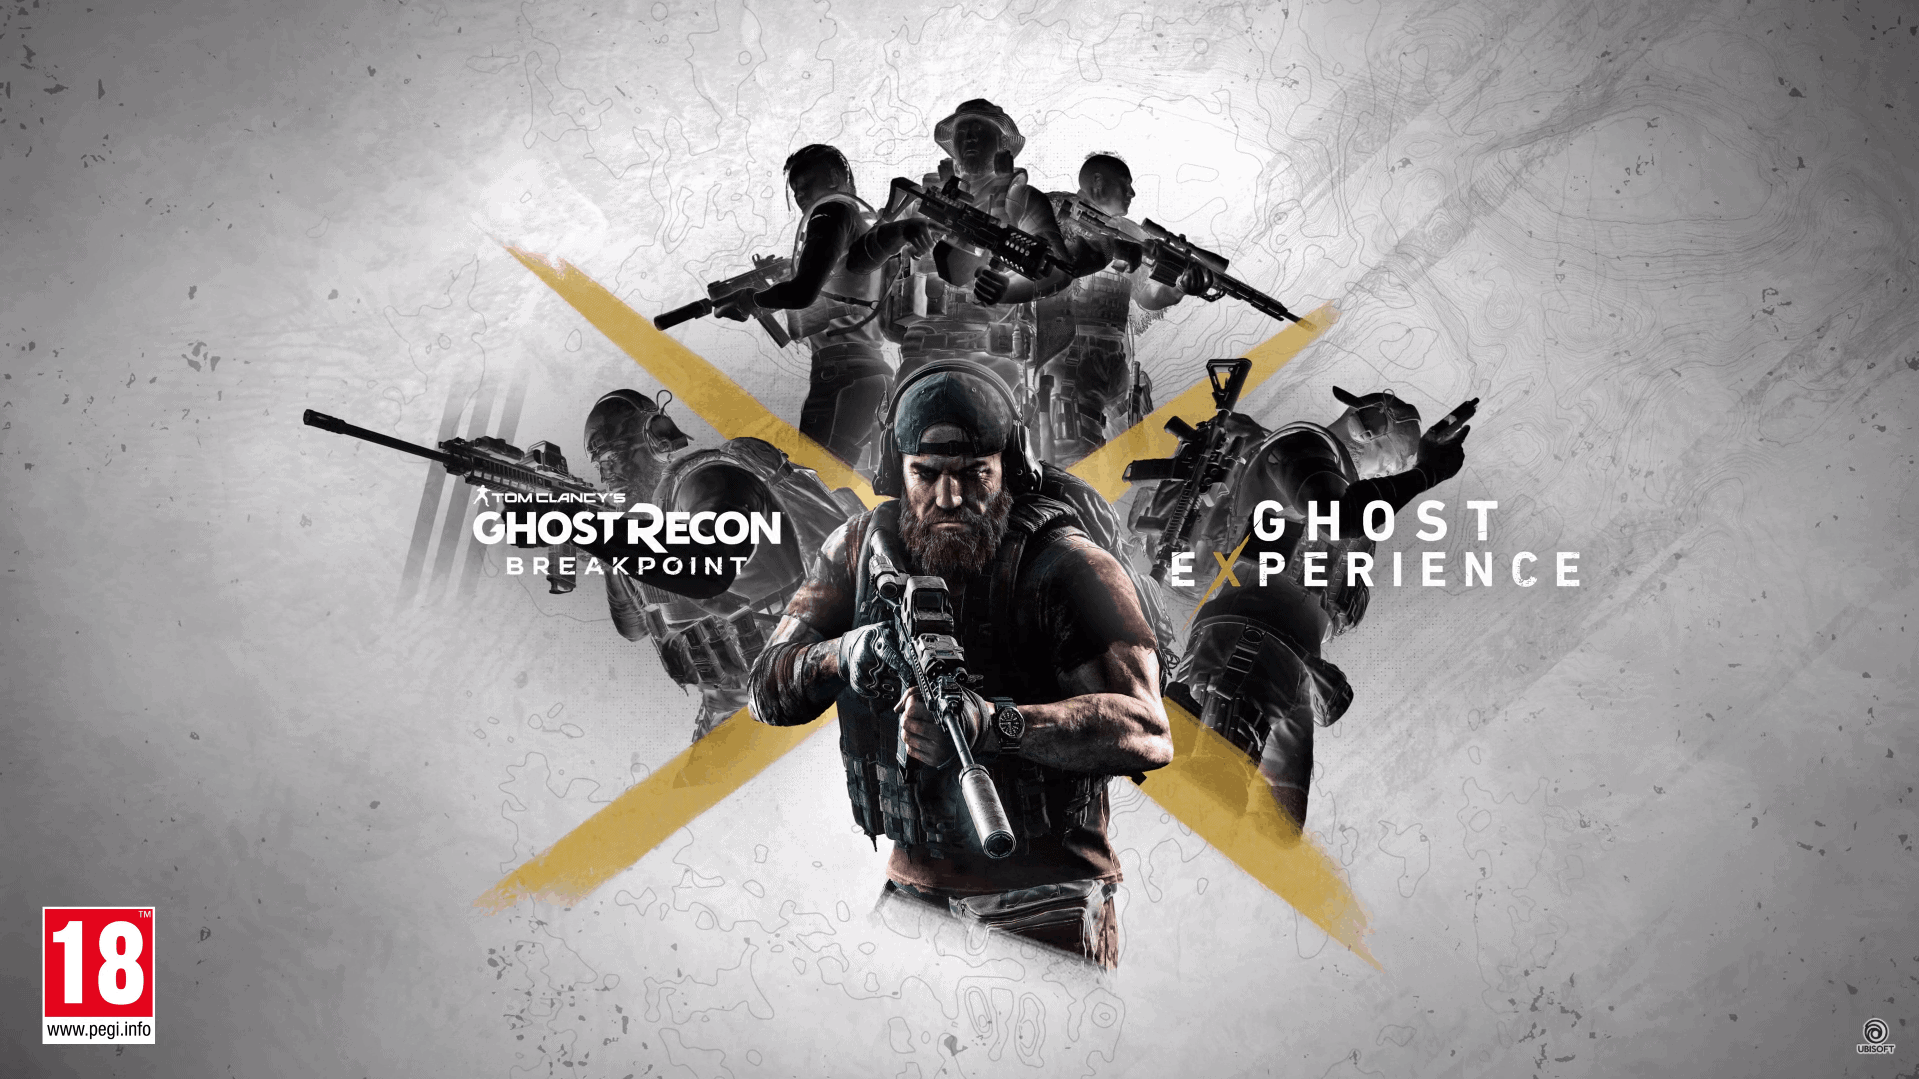 The Ghost Experience: a more immersive mode for Ghost Recon Breakpoint